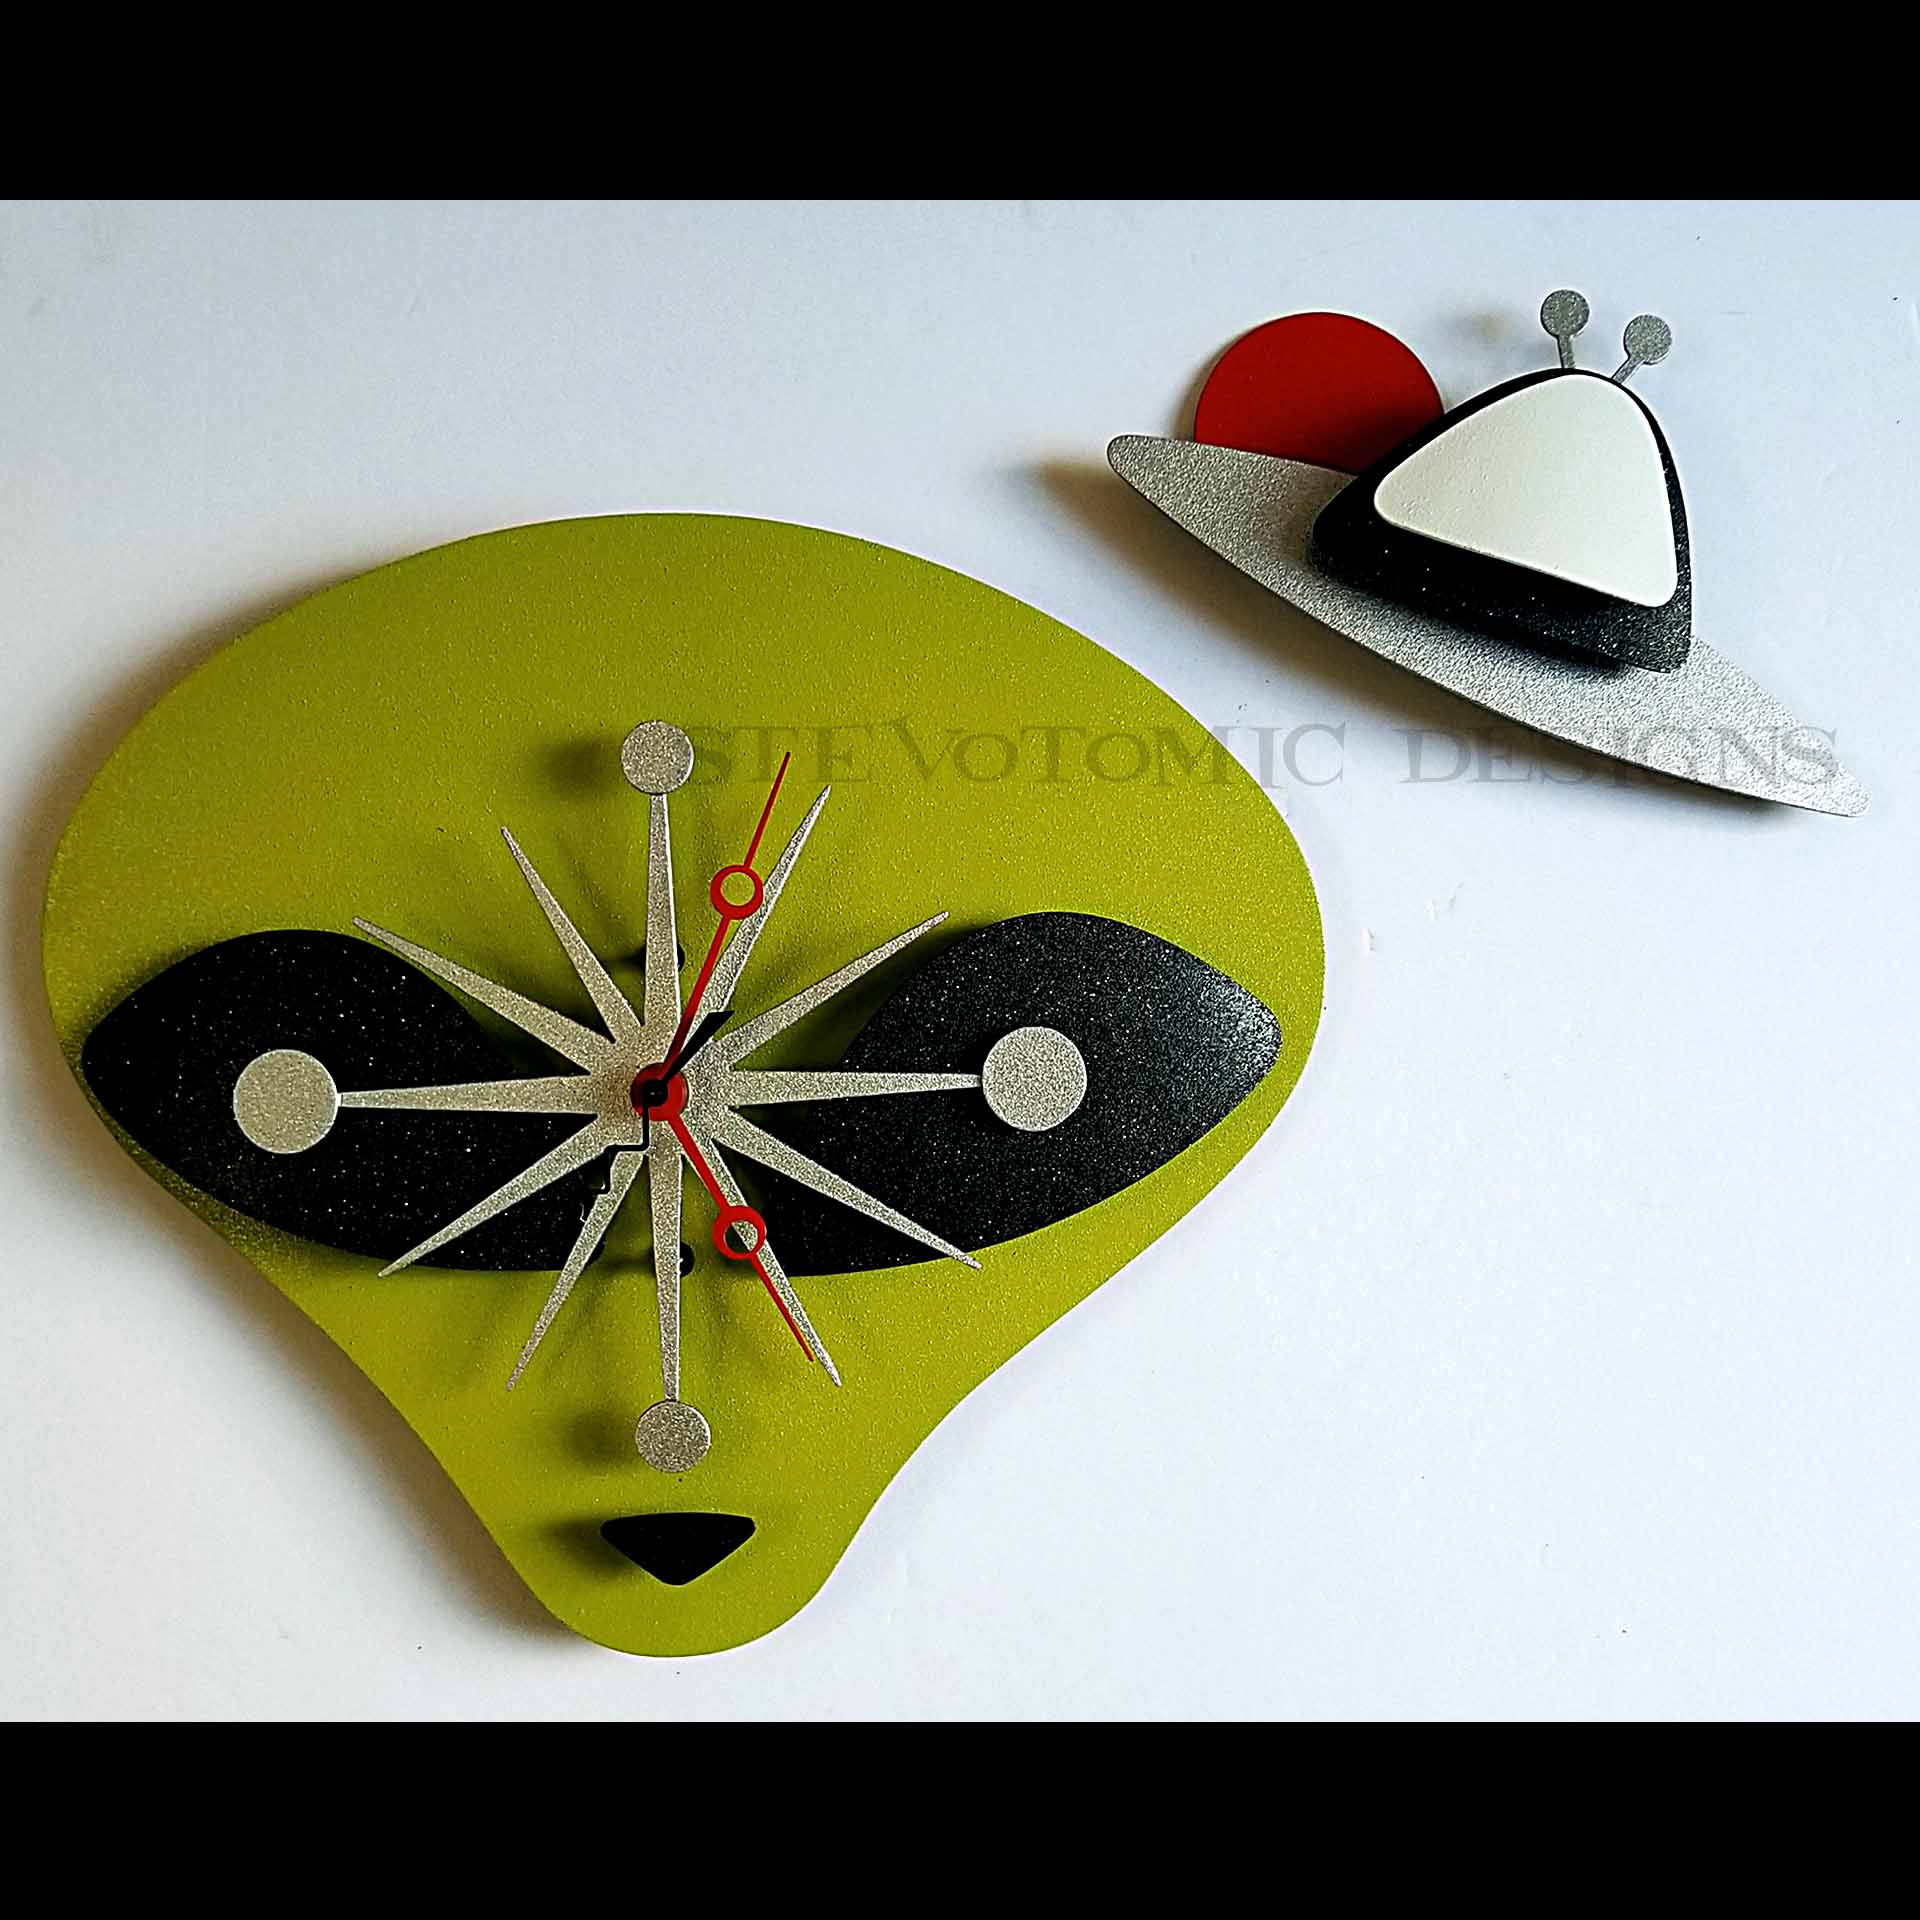 KIDS-MEAL-001-ALIEN-CLOCK